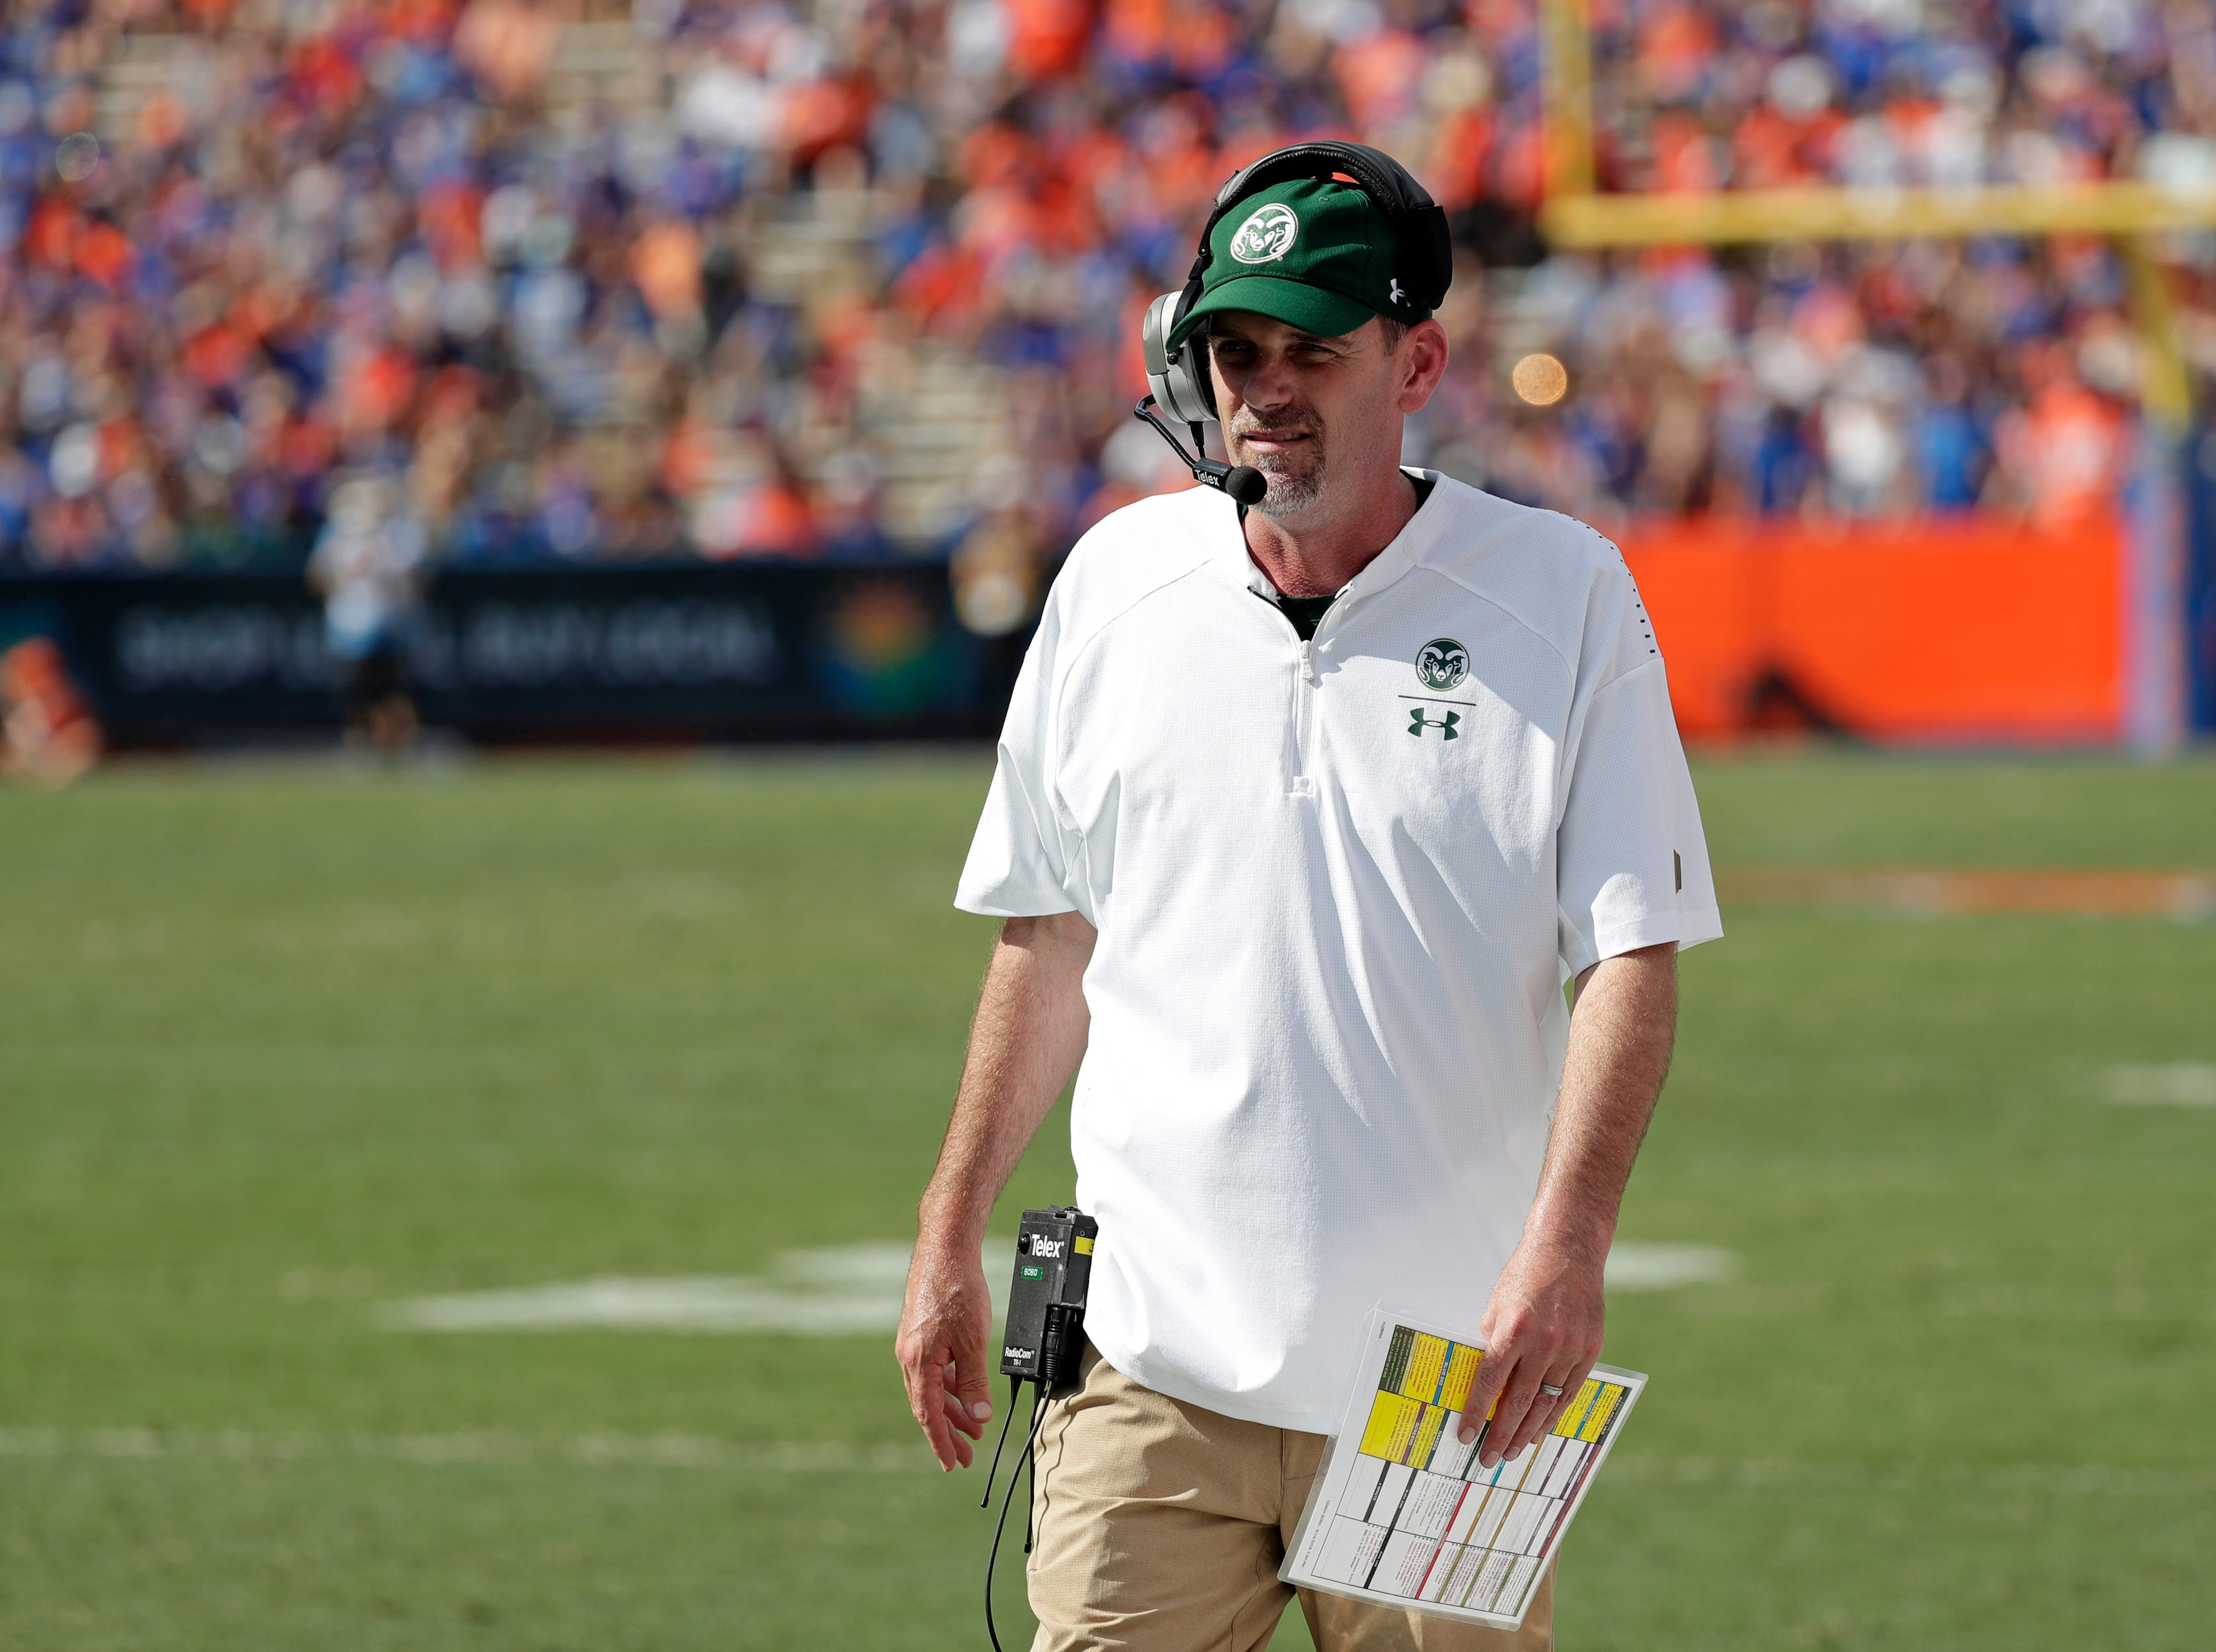 Colorado State head coach Mike Bobo walks along the sideline during the first half of an NCAA college football game against Florida, Saturday, Sept. 15, 2018, in Gainesville, Fla. (AP Photo/John Raoux)